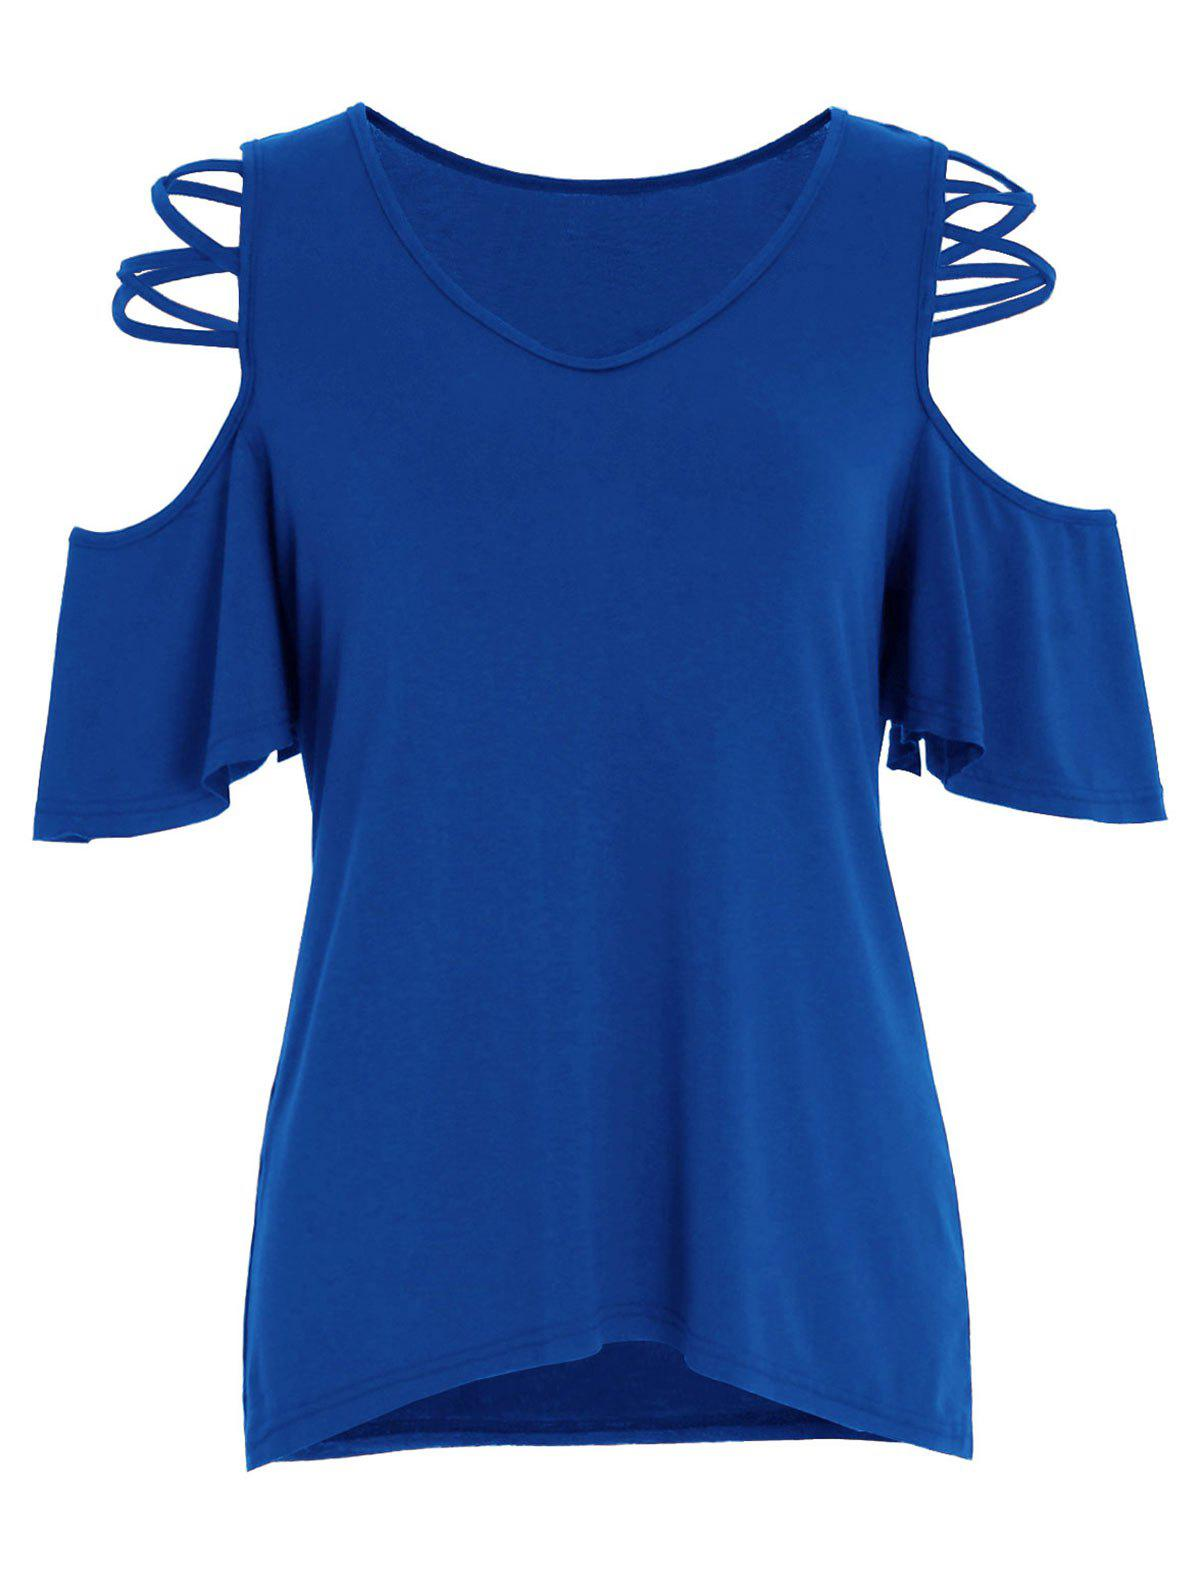 New Criss Cross V Neck Cold Shoulder Top